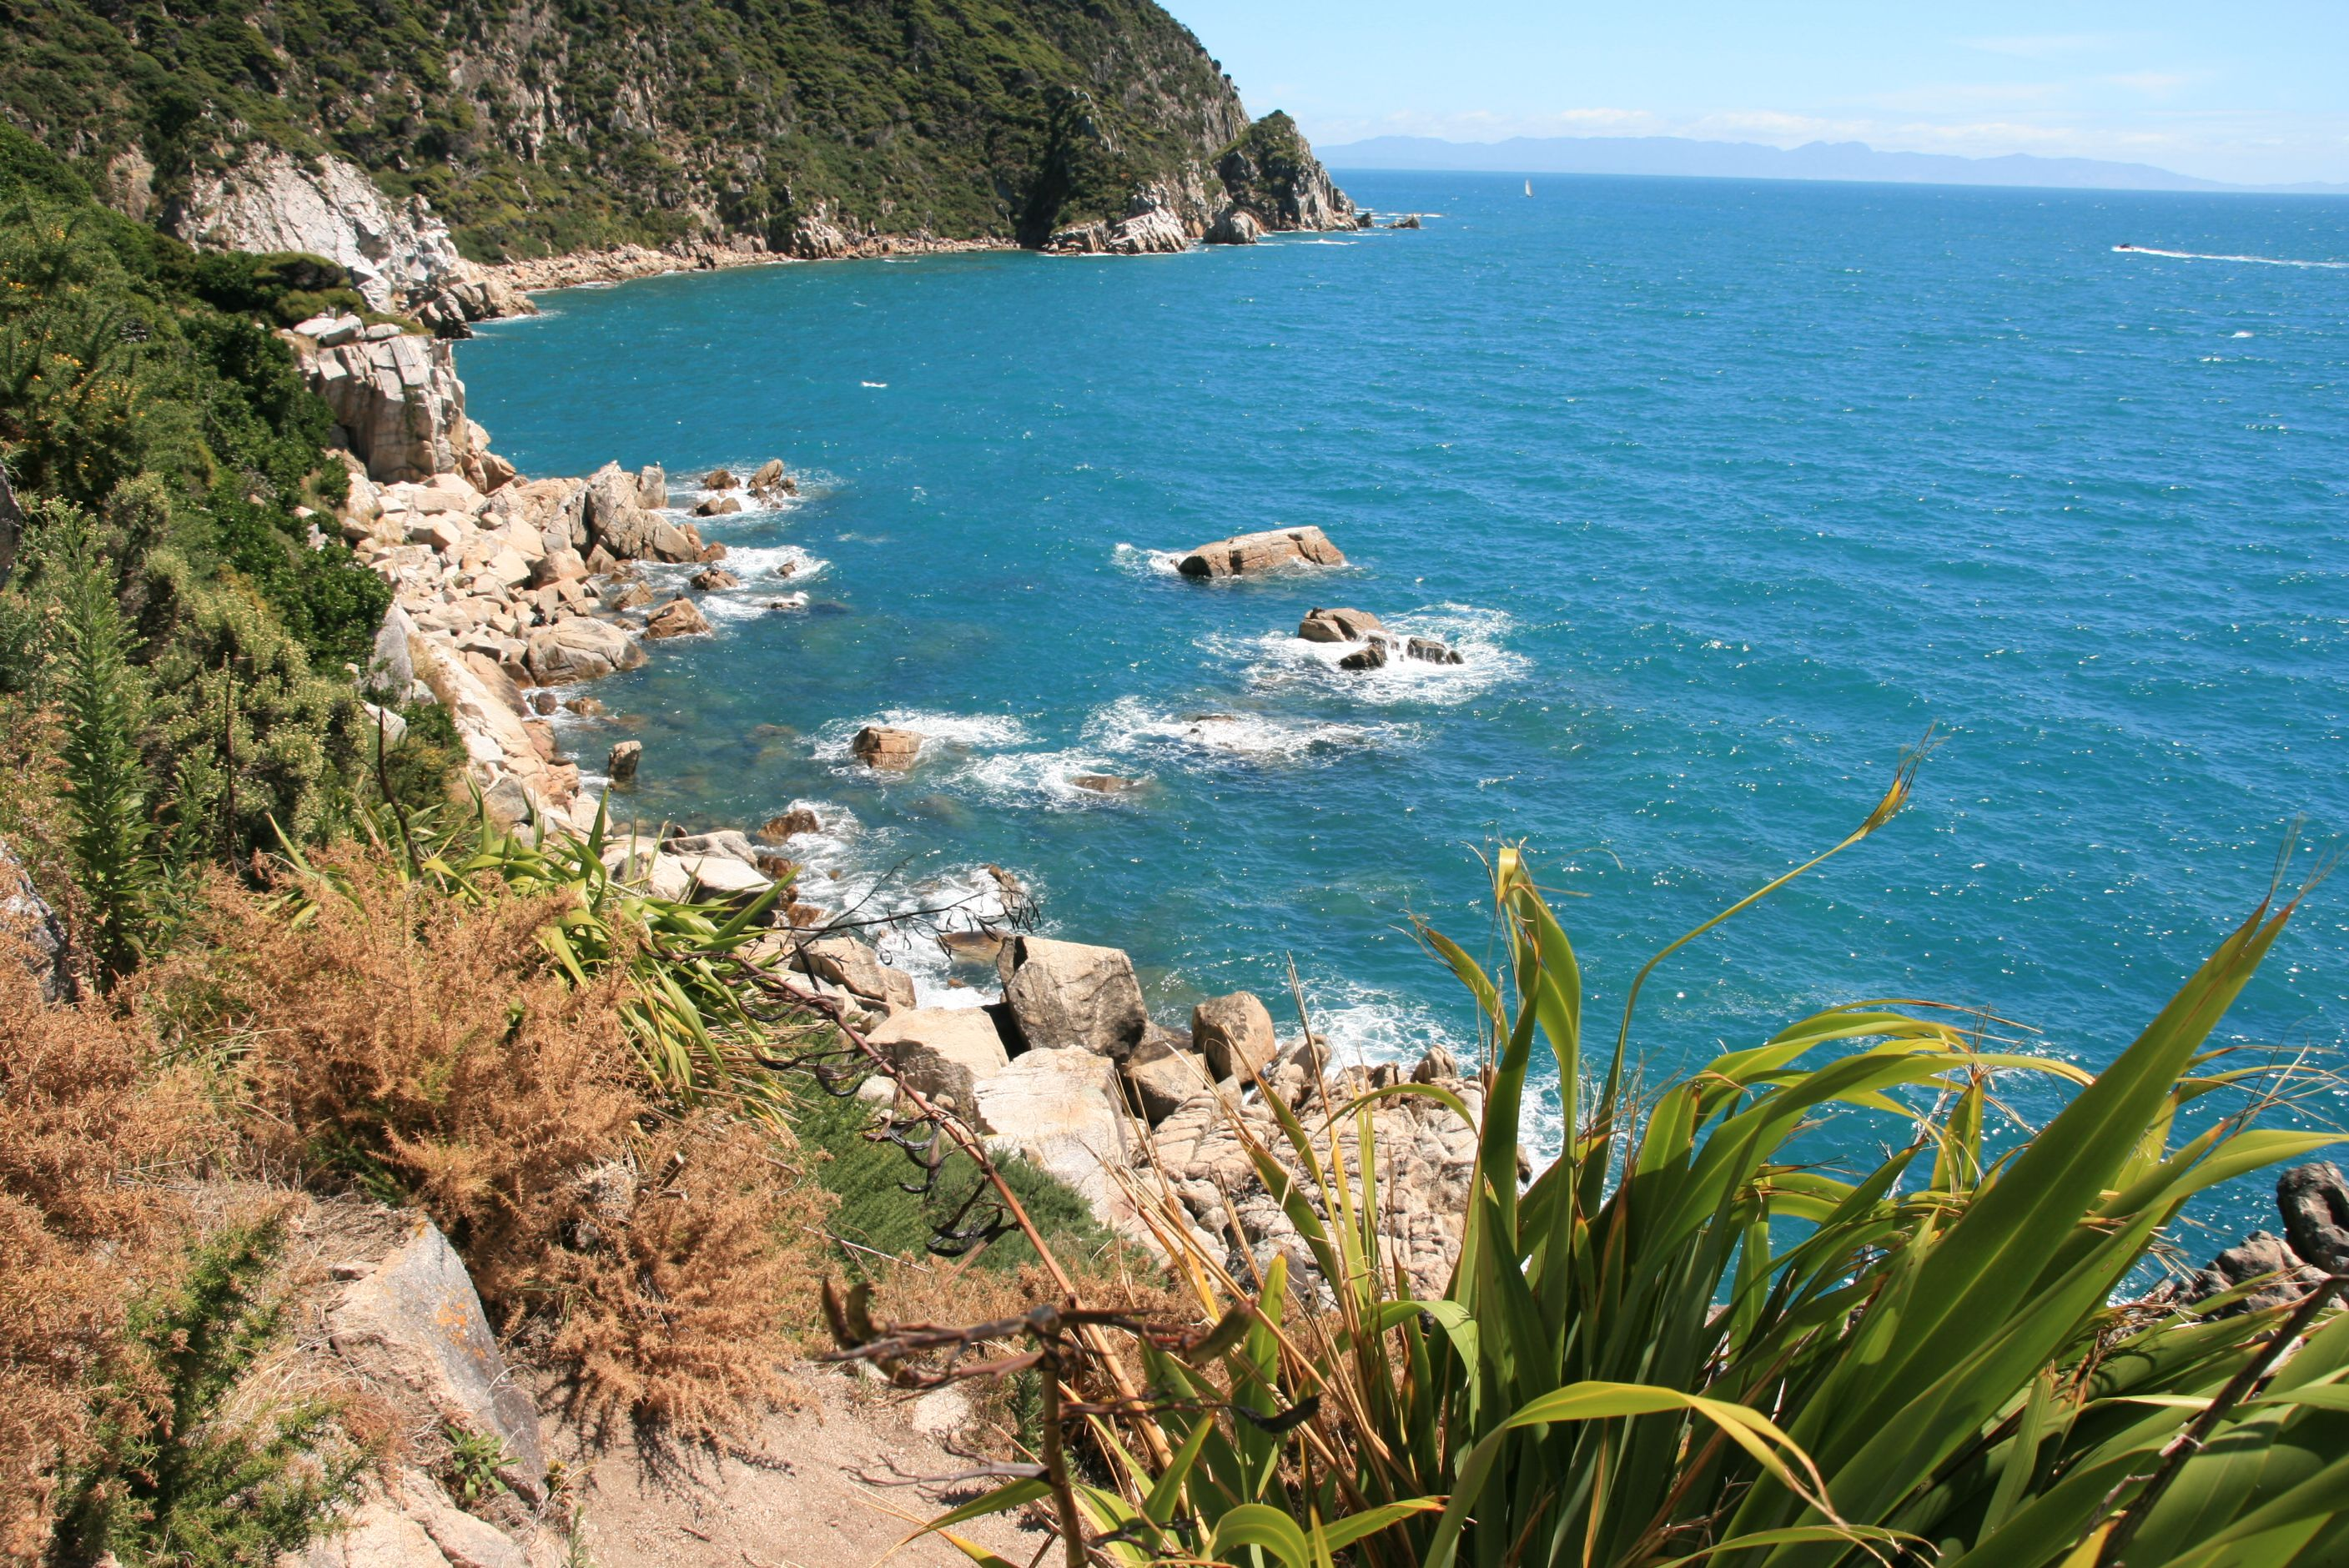 A beautiful day in the Abel Tasman National Park with a nice view to the sea